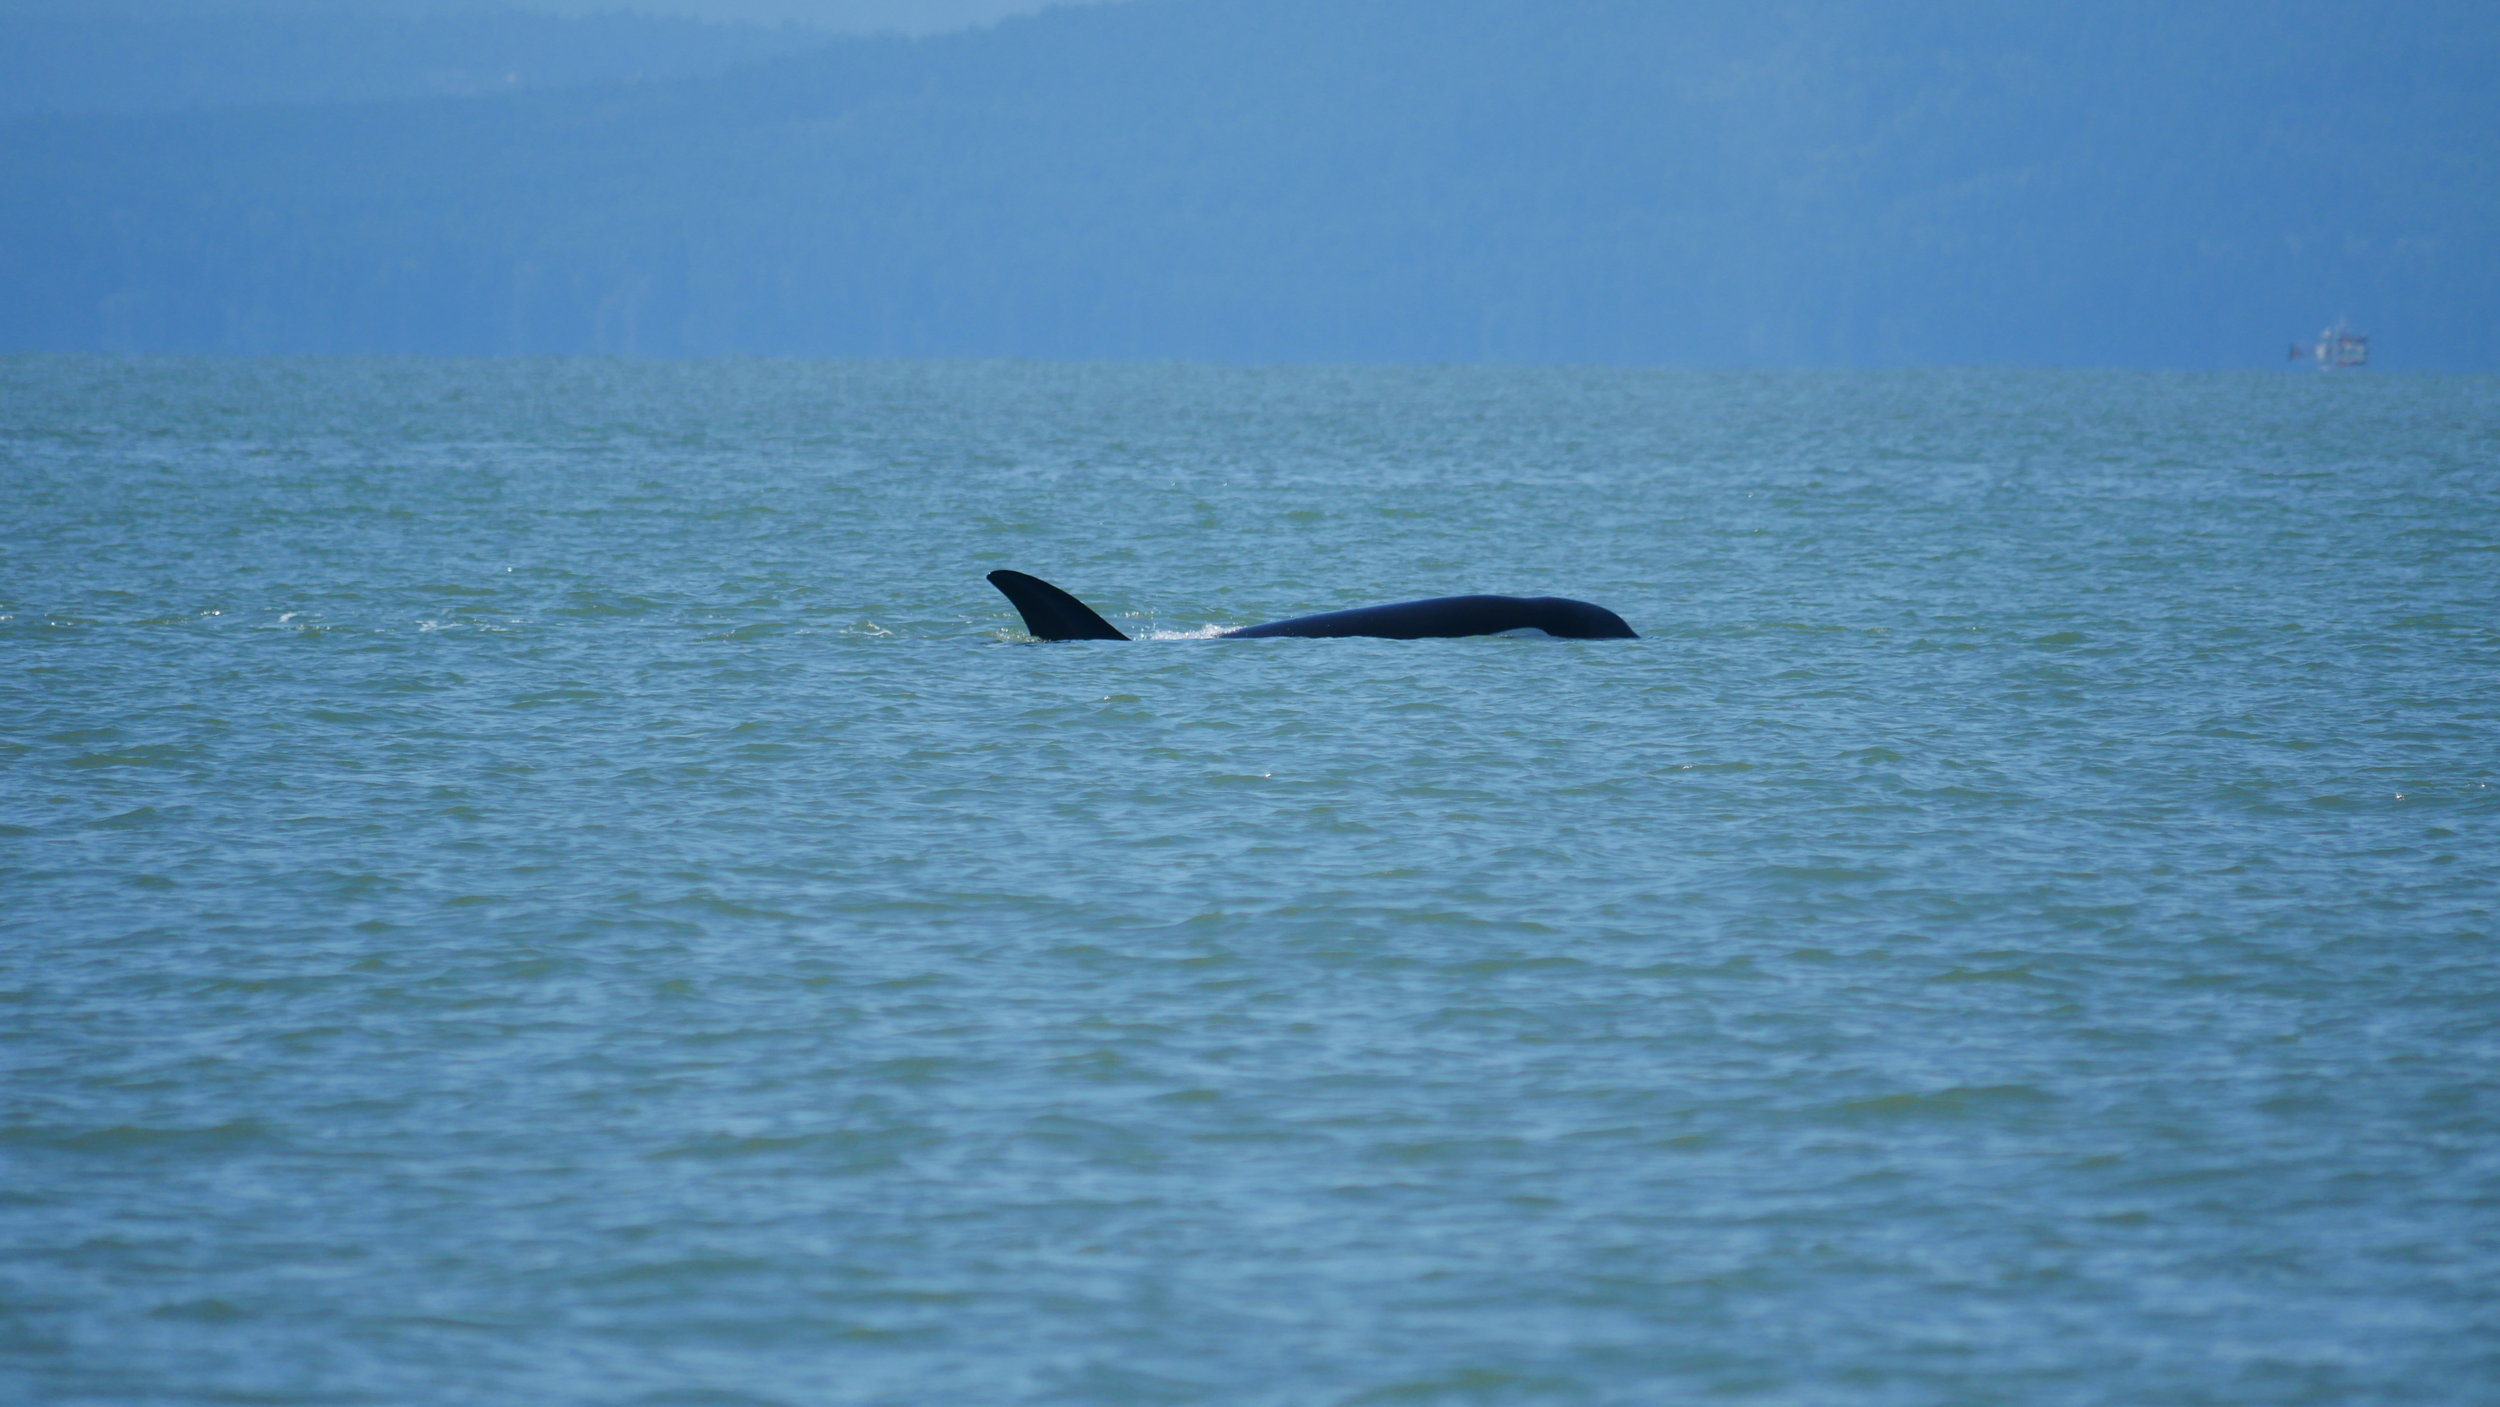 Centeki (T122) doesn't have her own pod, so she usually travels with the T46's. Photo by Ryan Uslu (10:30).